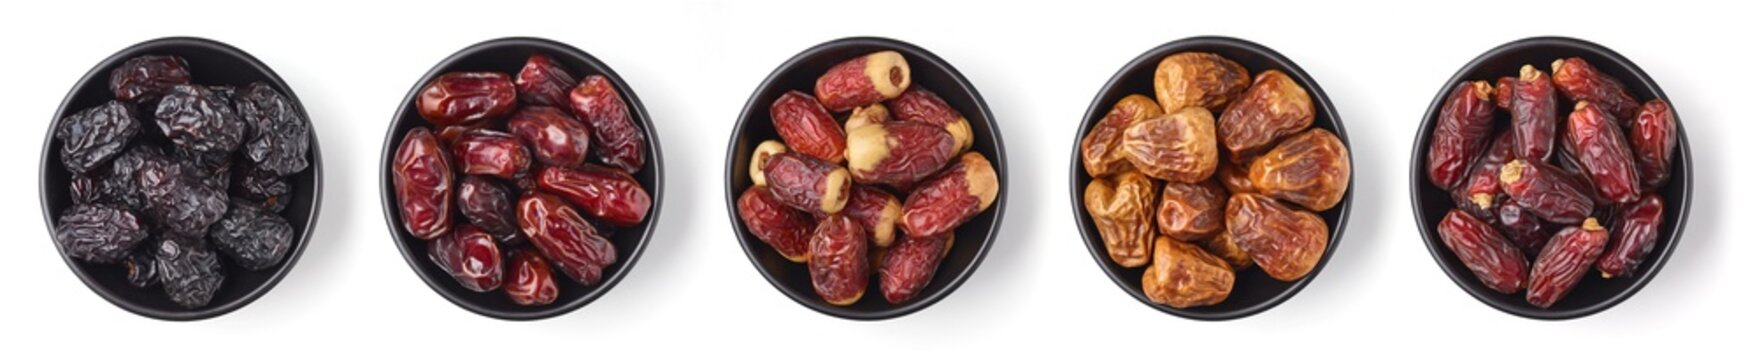 Mixed dates on white background, from above